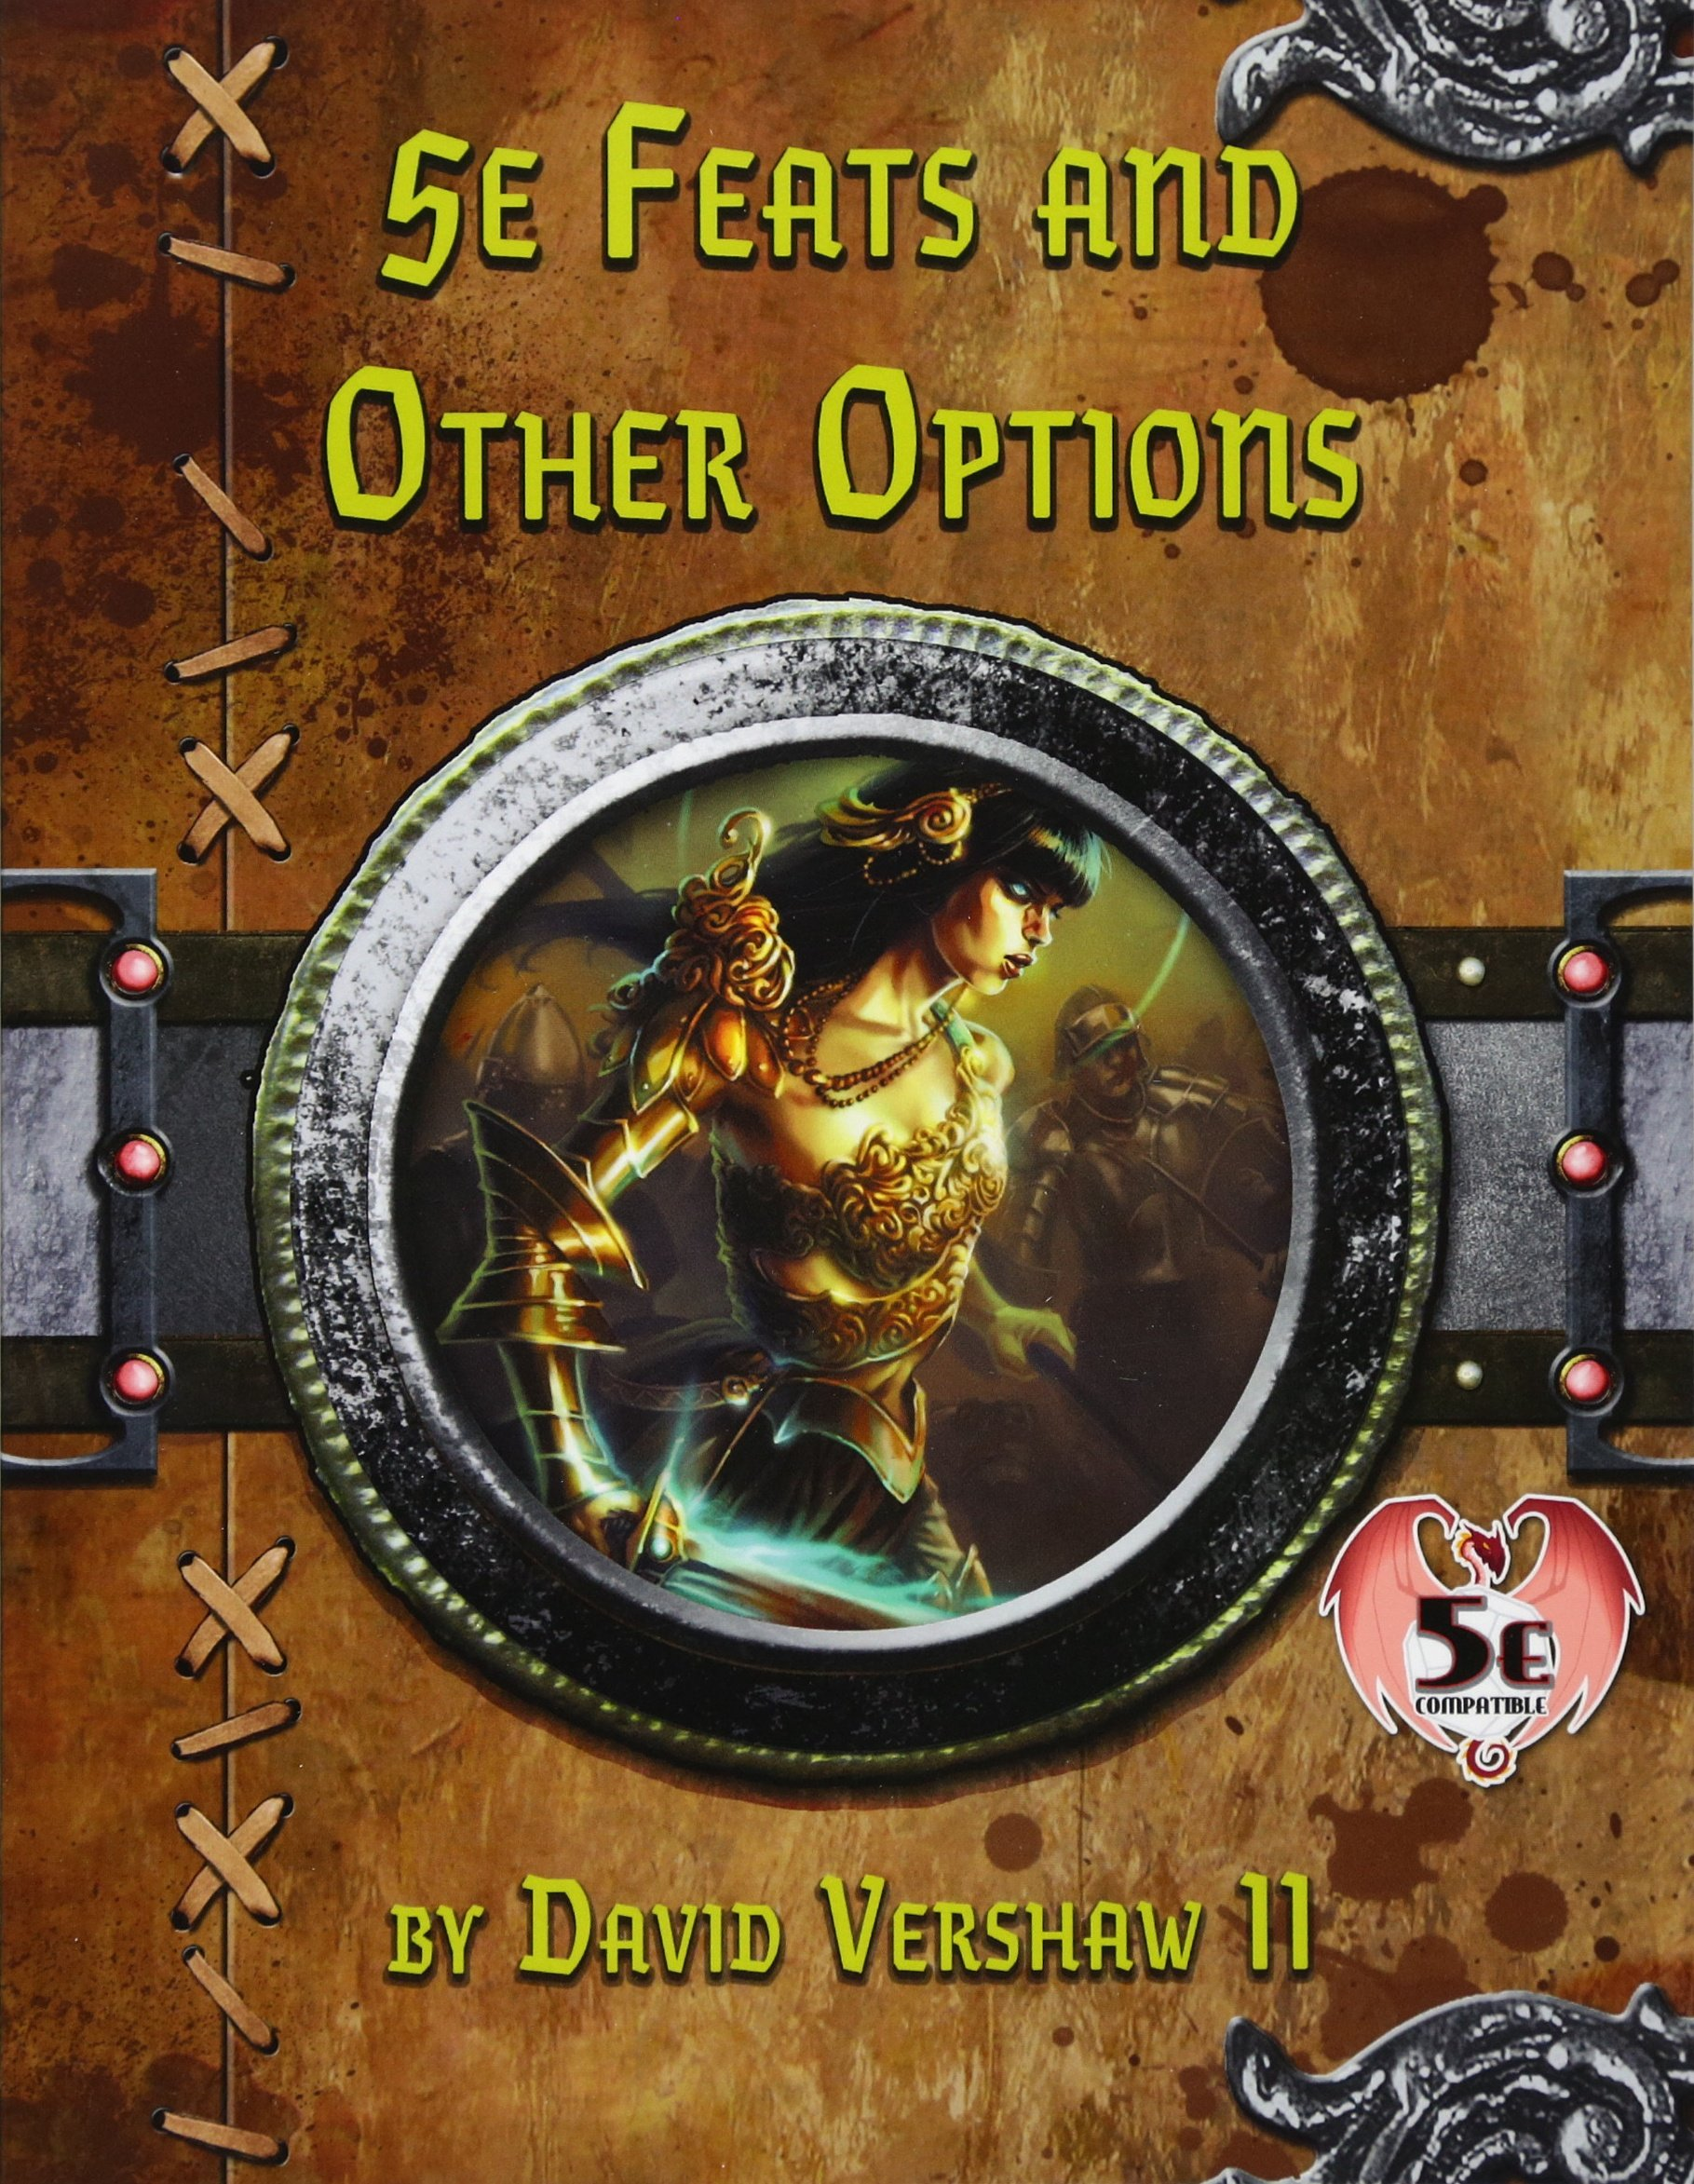 5e feats and other options dungeons and dragons 5e david vershaw 5e feats and other options dungeons and dragons 5e david vershaw ii travis legge 9781539356813 amazon books fandeluxe Gallery